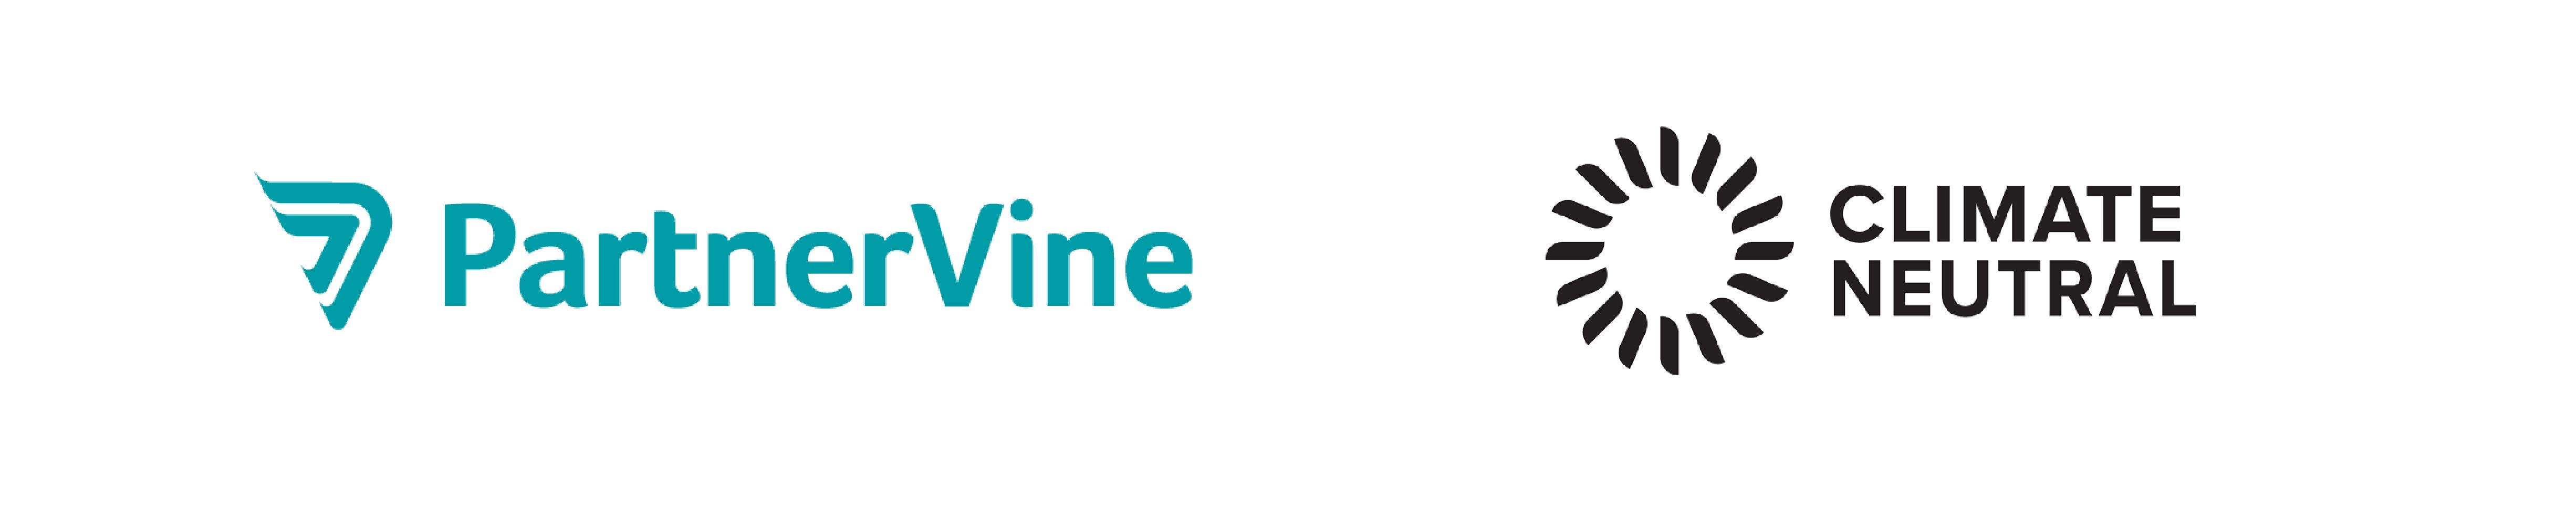 PartnerVine-and-Climate-Neutral-Logo-for-Press-Release